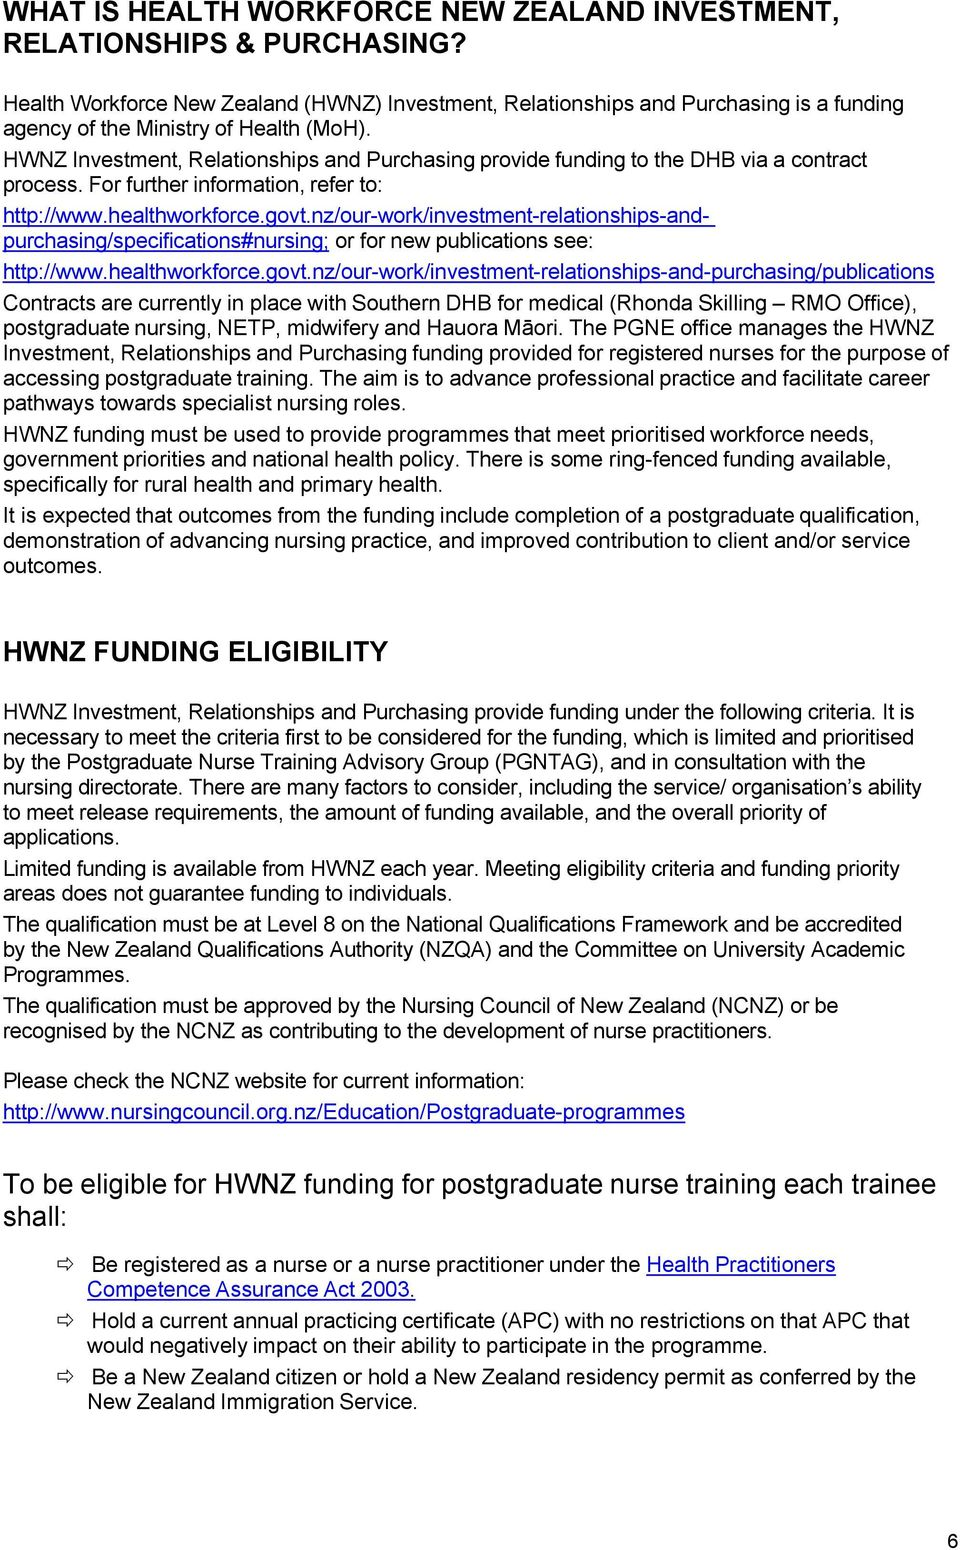 HWNZ Investment, Relationships and Purchasing provide funding to the DHB via a contract process. For further information, refer to: http://www.healthworkforce.govt.